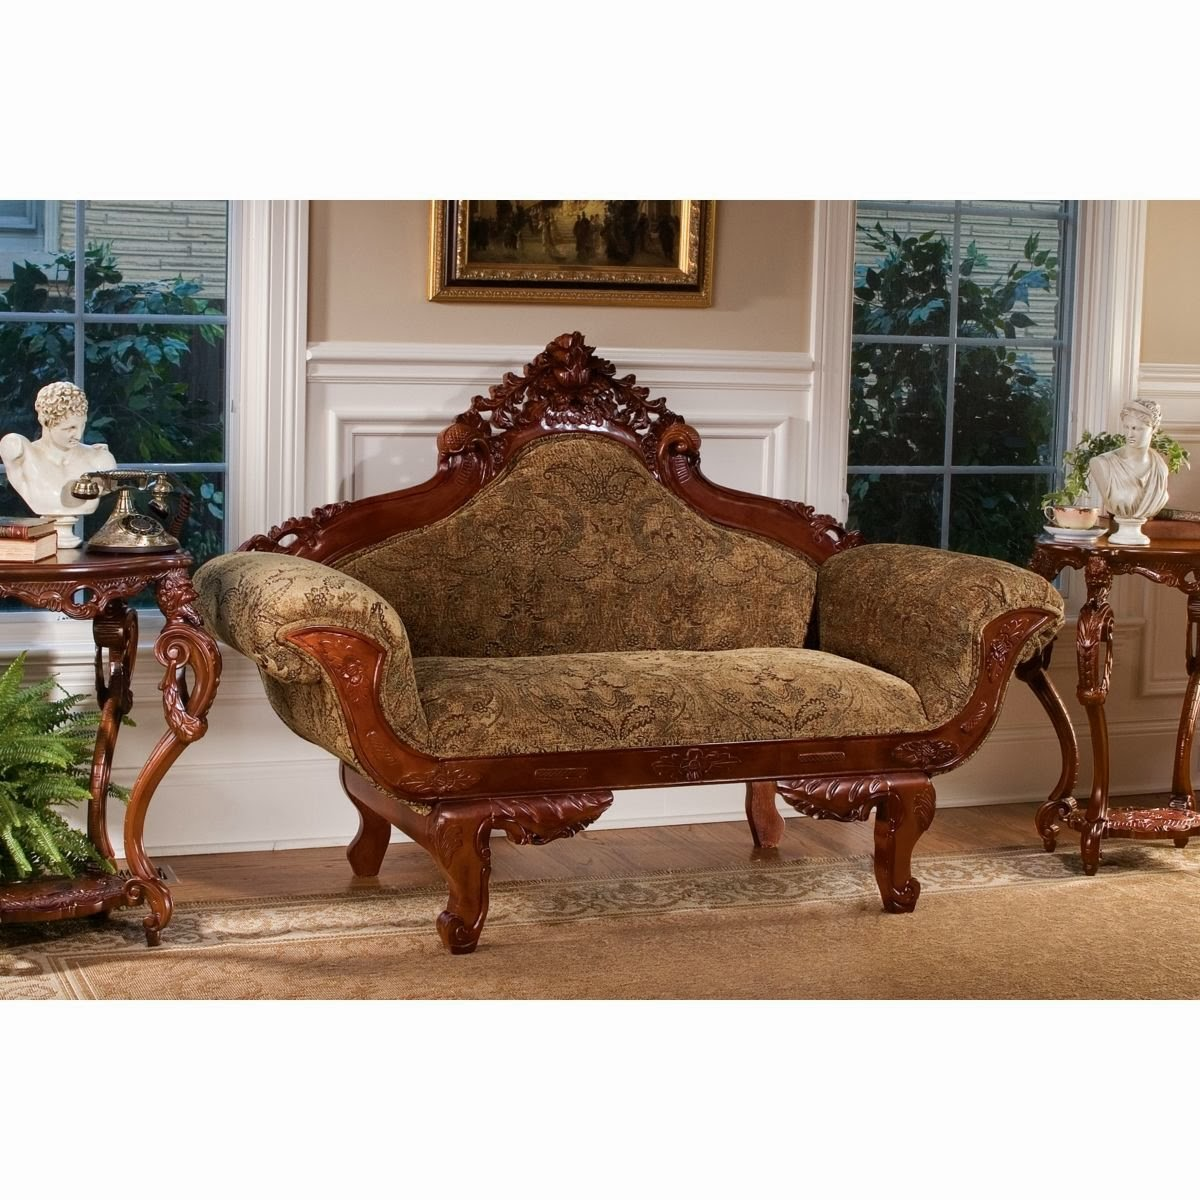 Victorian Couch: Antique Victorian Sofa Set: Antique Victorian Sofa